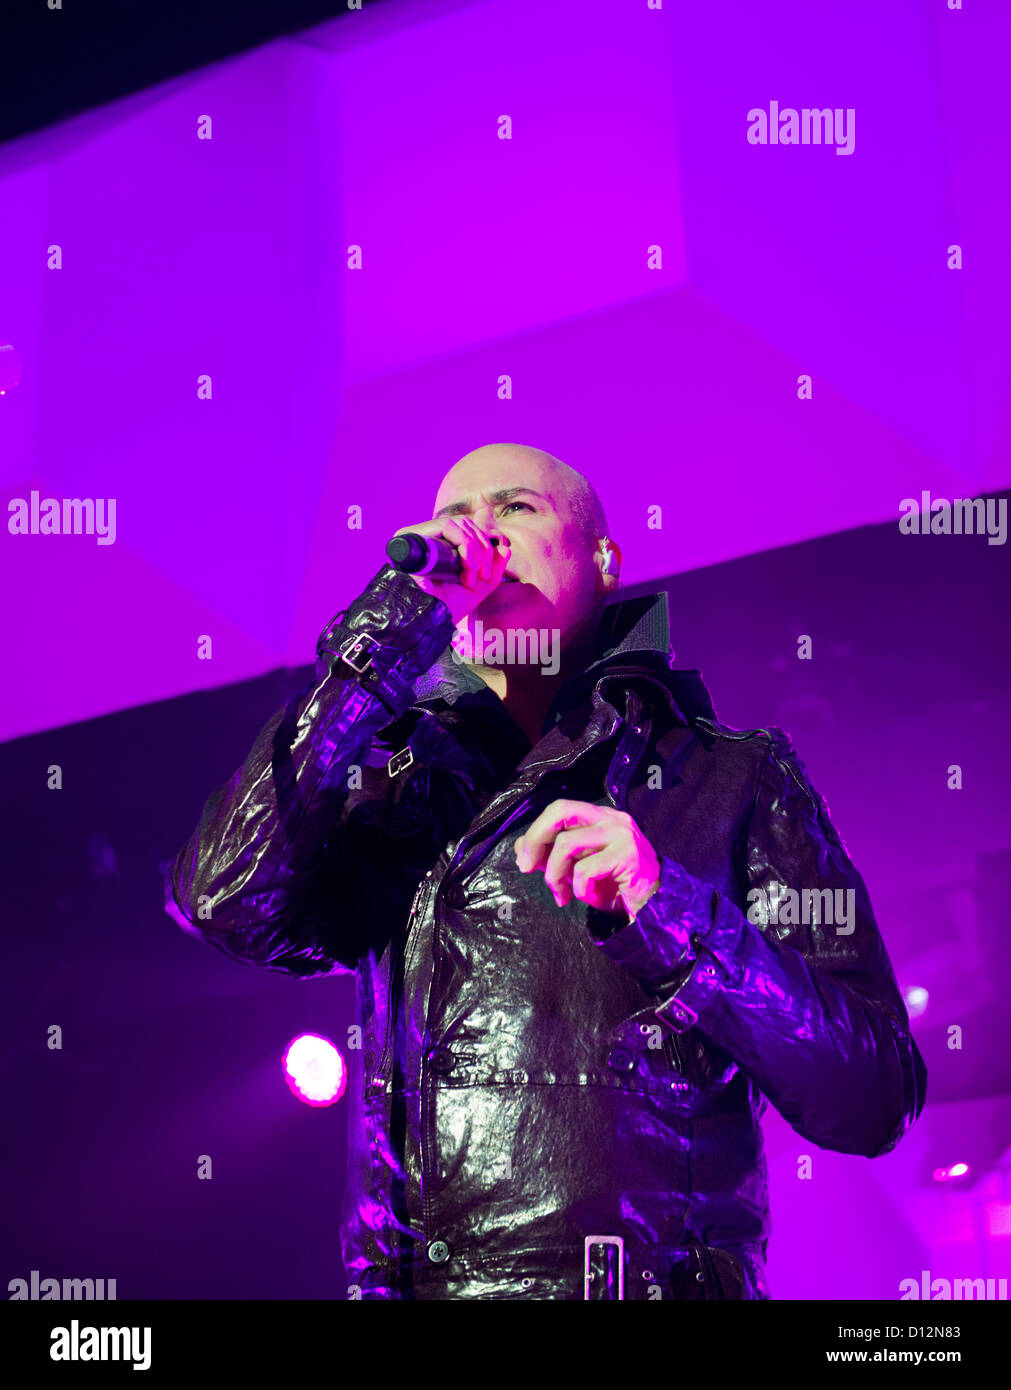 Phil Oakey band leader, with The Human League in concert at Wolverhampton Civic Hall on 2 December 2012 - Stock Image